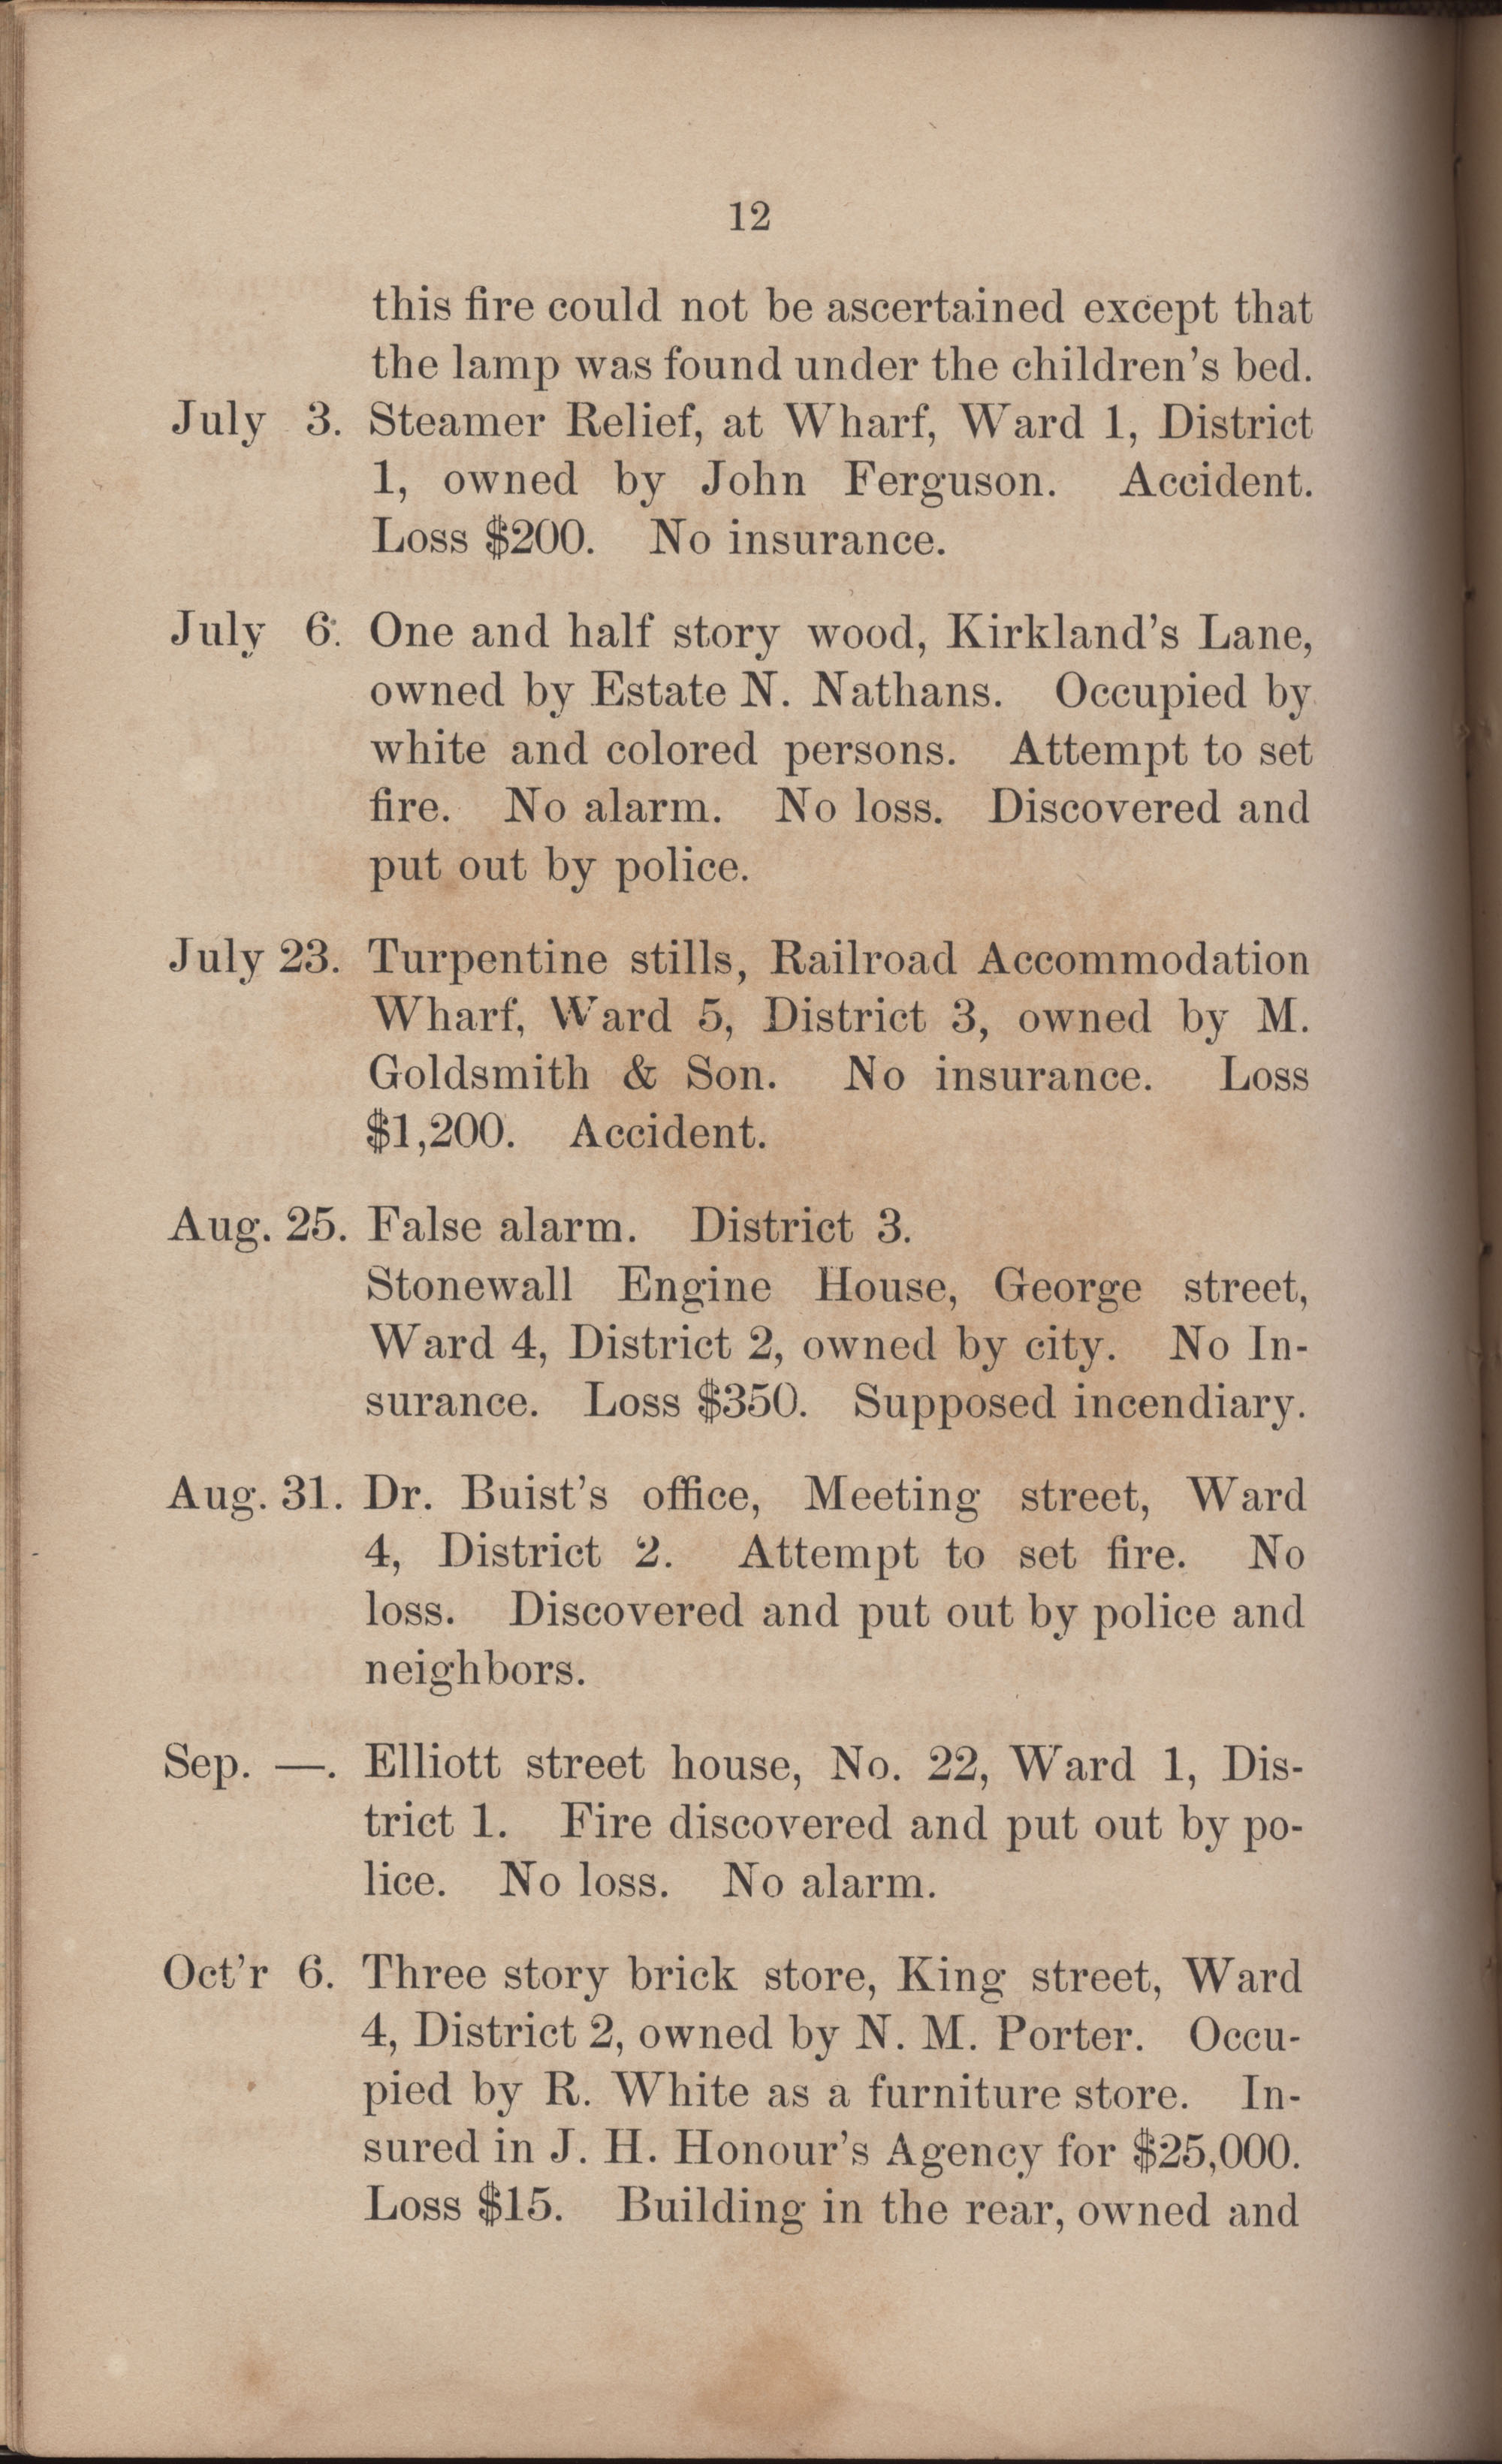 Annual Report of the Chief of the Fire Department of the City of Charleston, page 303